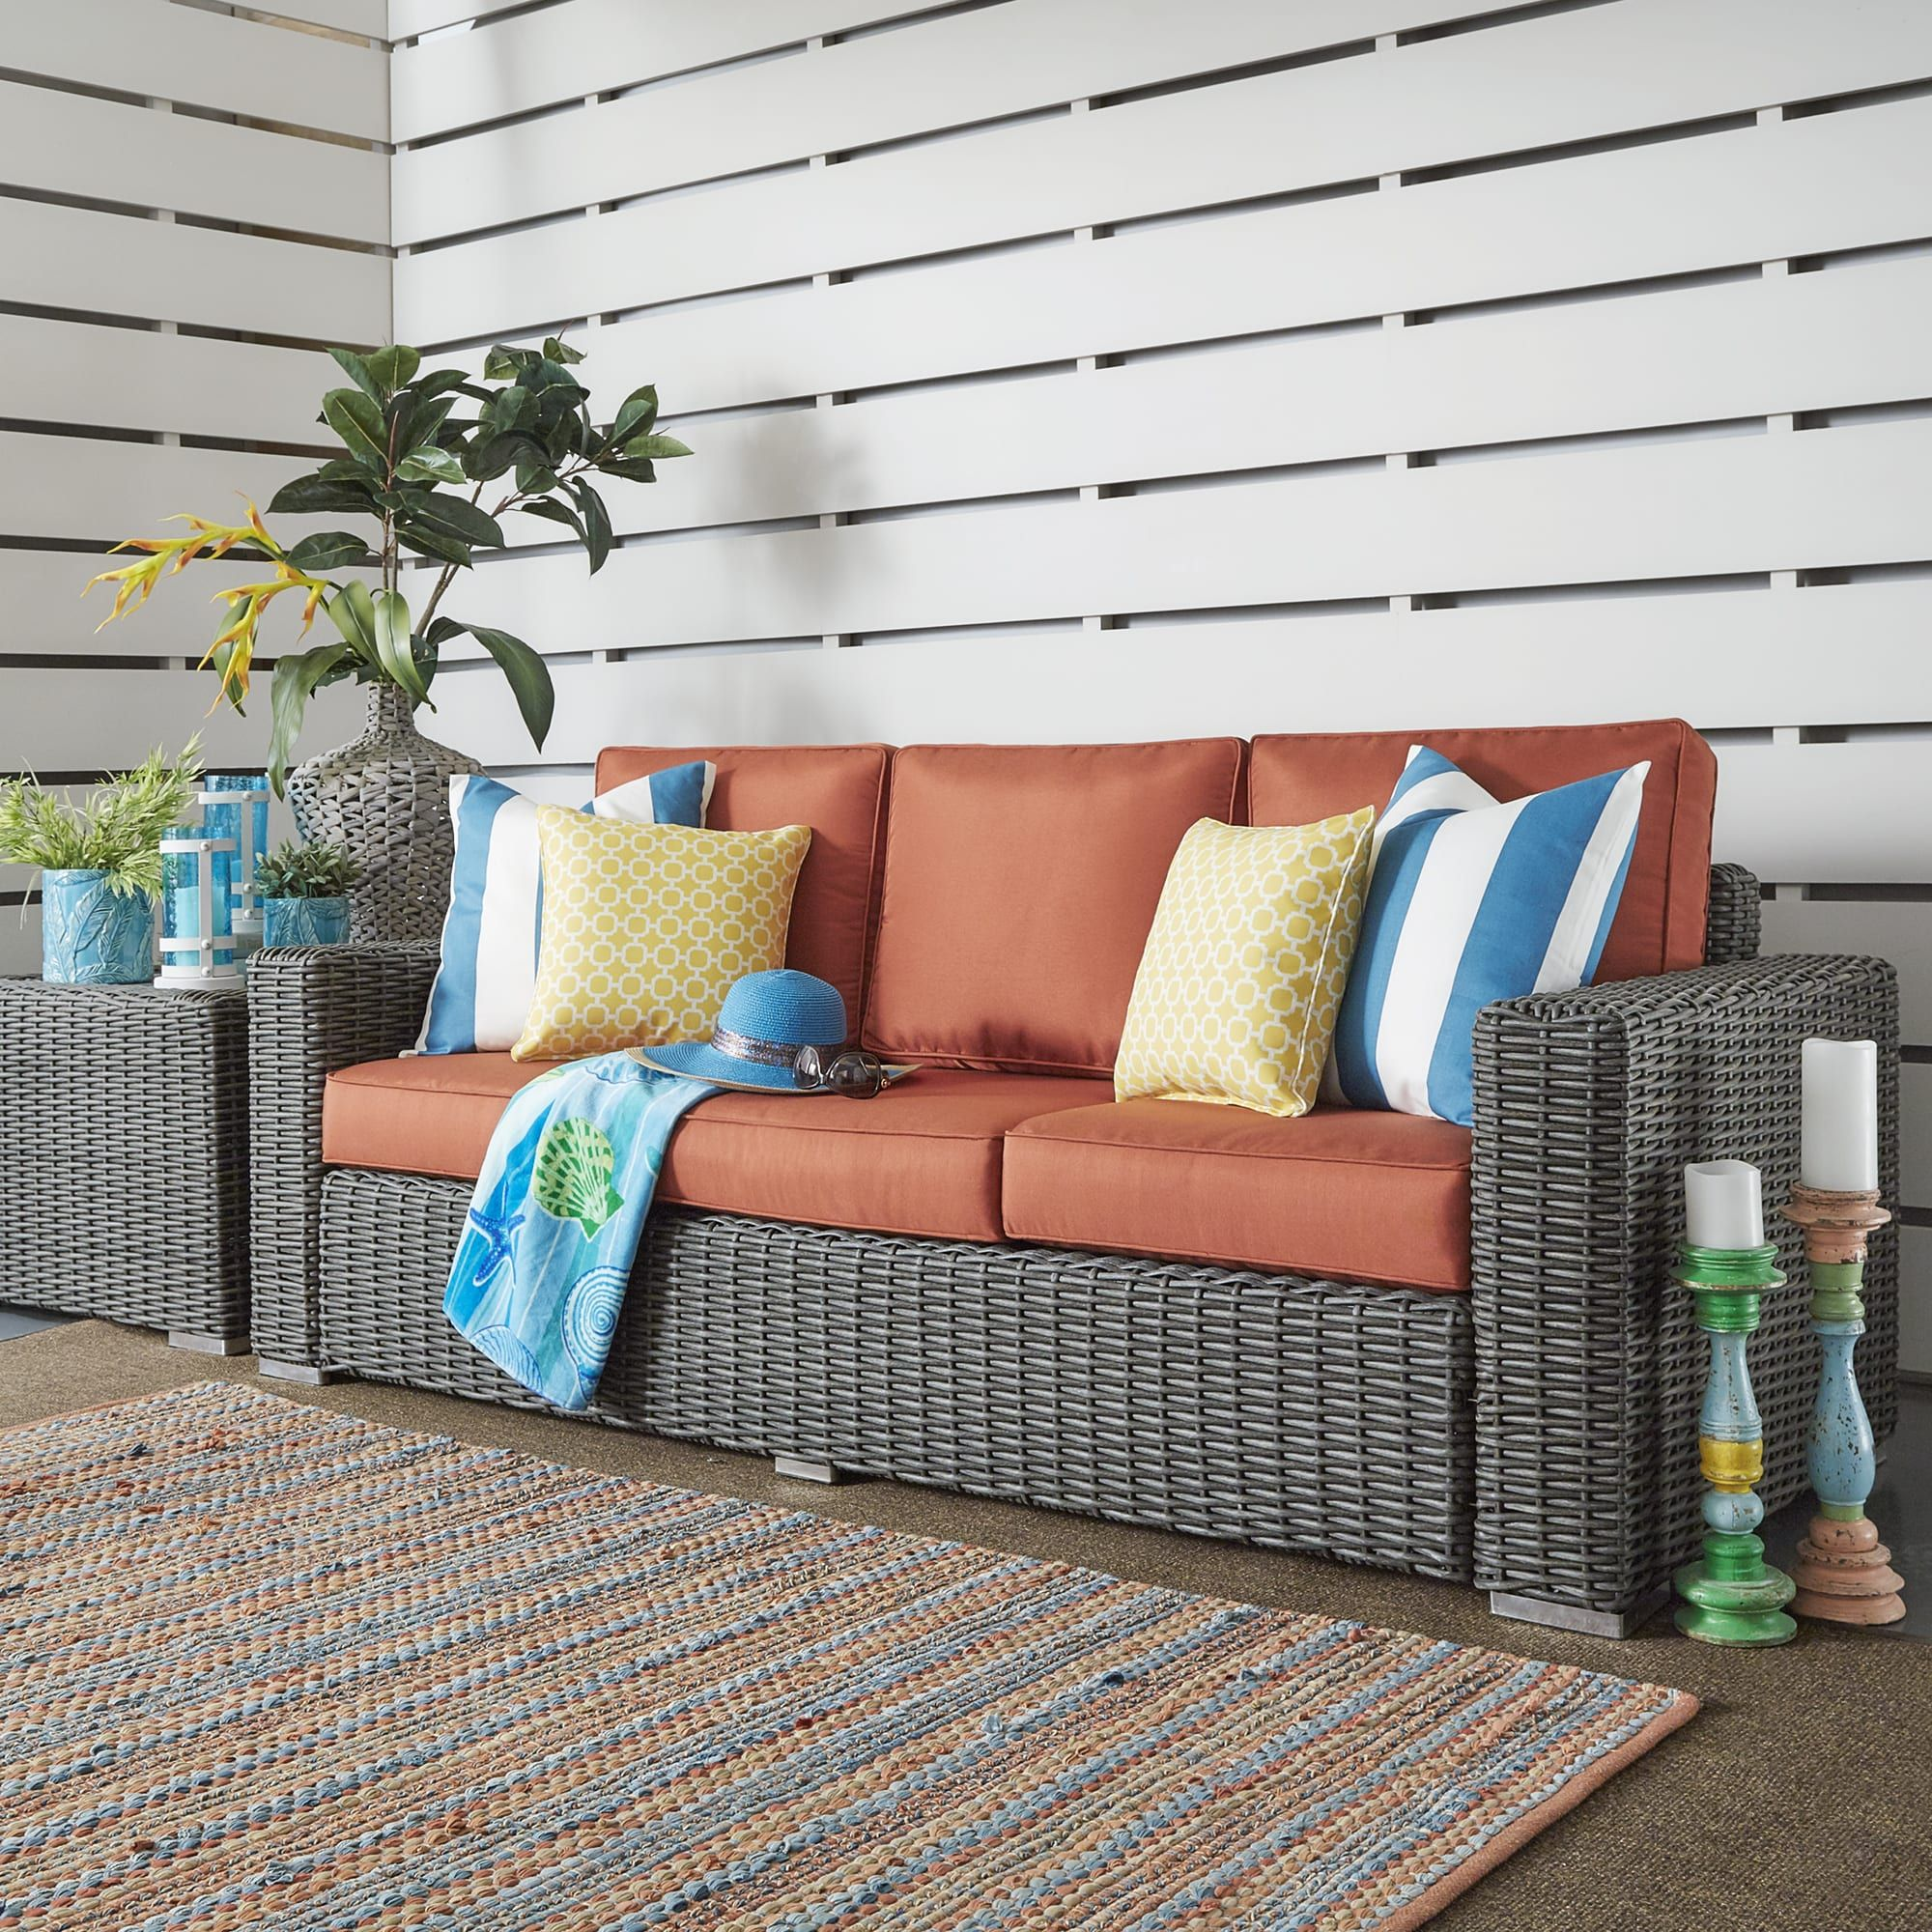 Barbados Wicker Outdoor Cushioned Grey Charcoal Sofa with Square Arm  iNSPIRE Q Oasis (RED cushion